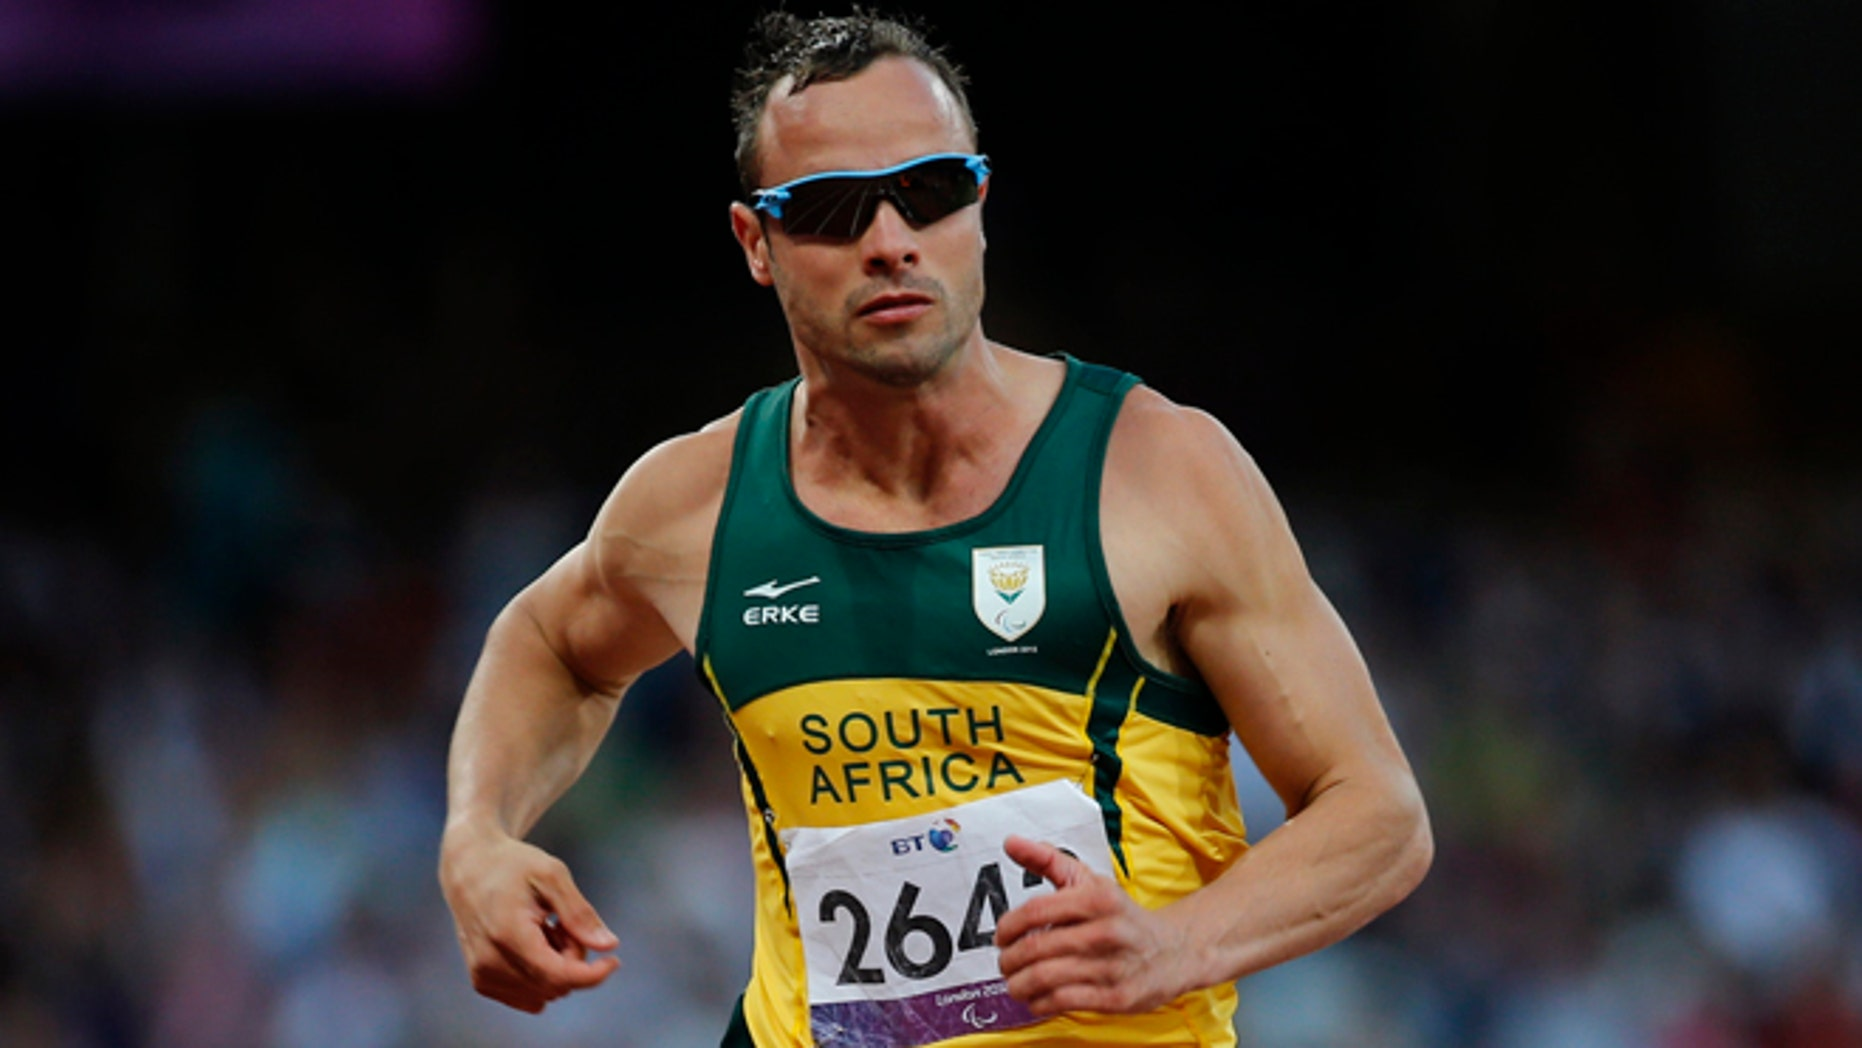 Sept. 5, 2012: In this file photo, South Africa' Oscar Pistorius competes during Men's 100m T44 round 1 at the 2012 Paralympics in London. A judge in South Africa says Pistorius, who is charged with murdering his girlfriend, can leave South Africa to compete in international competition, with conditions.